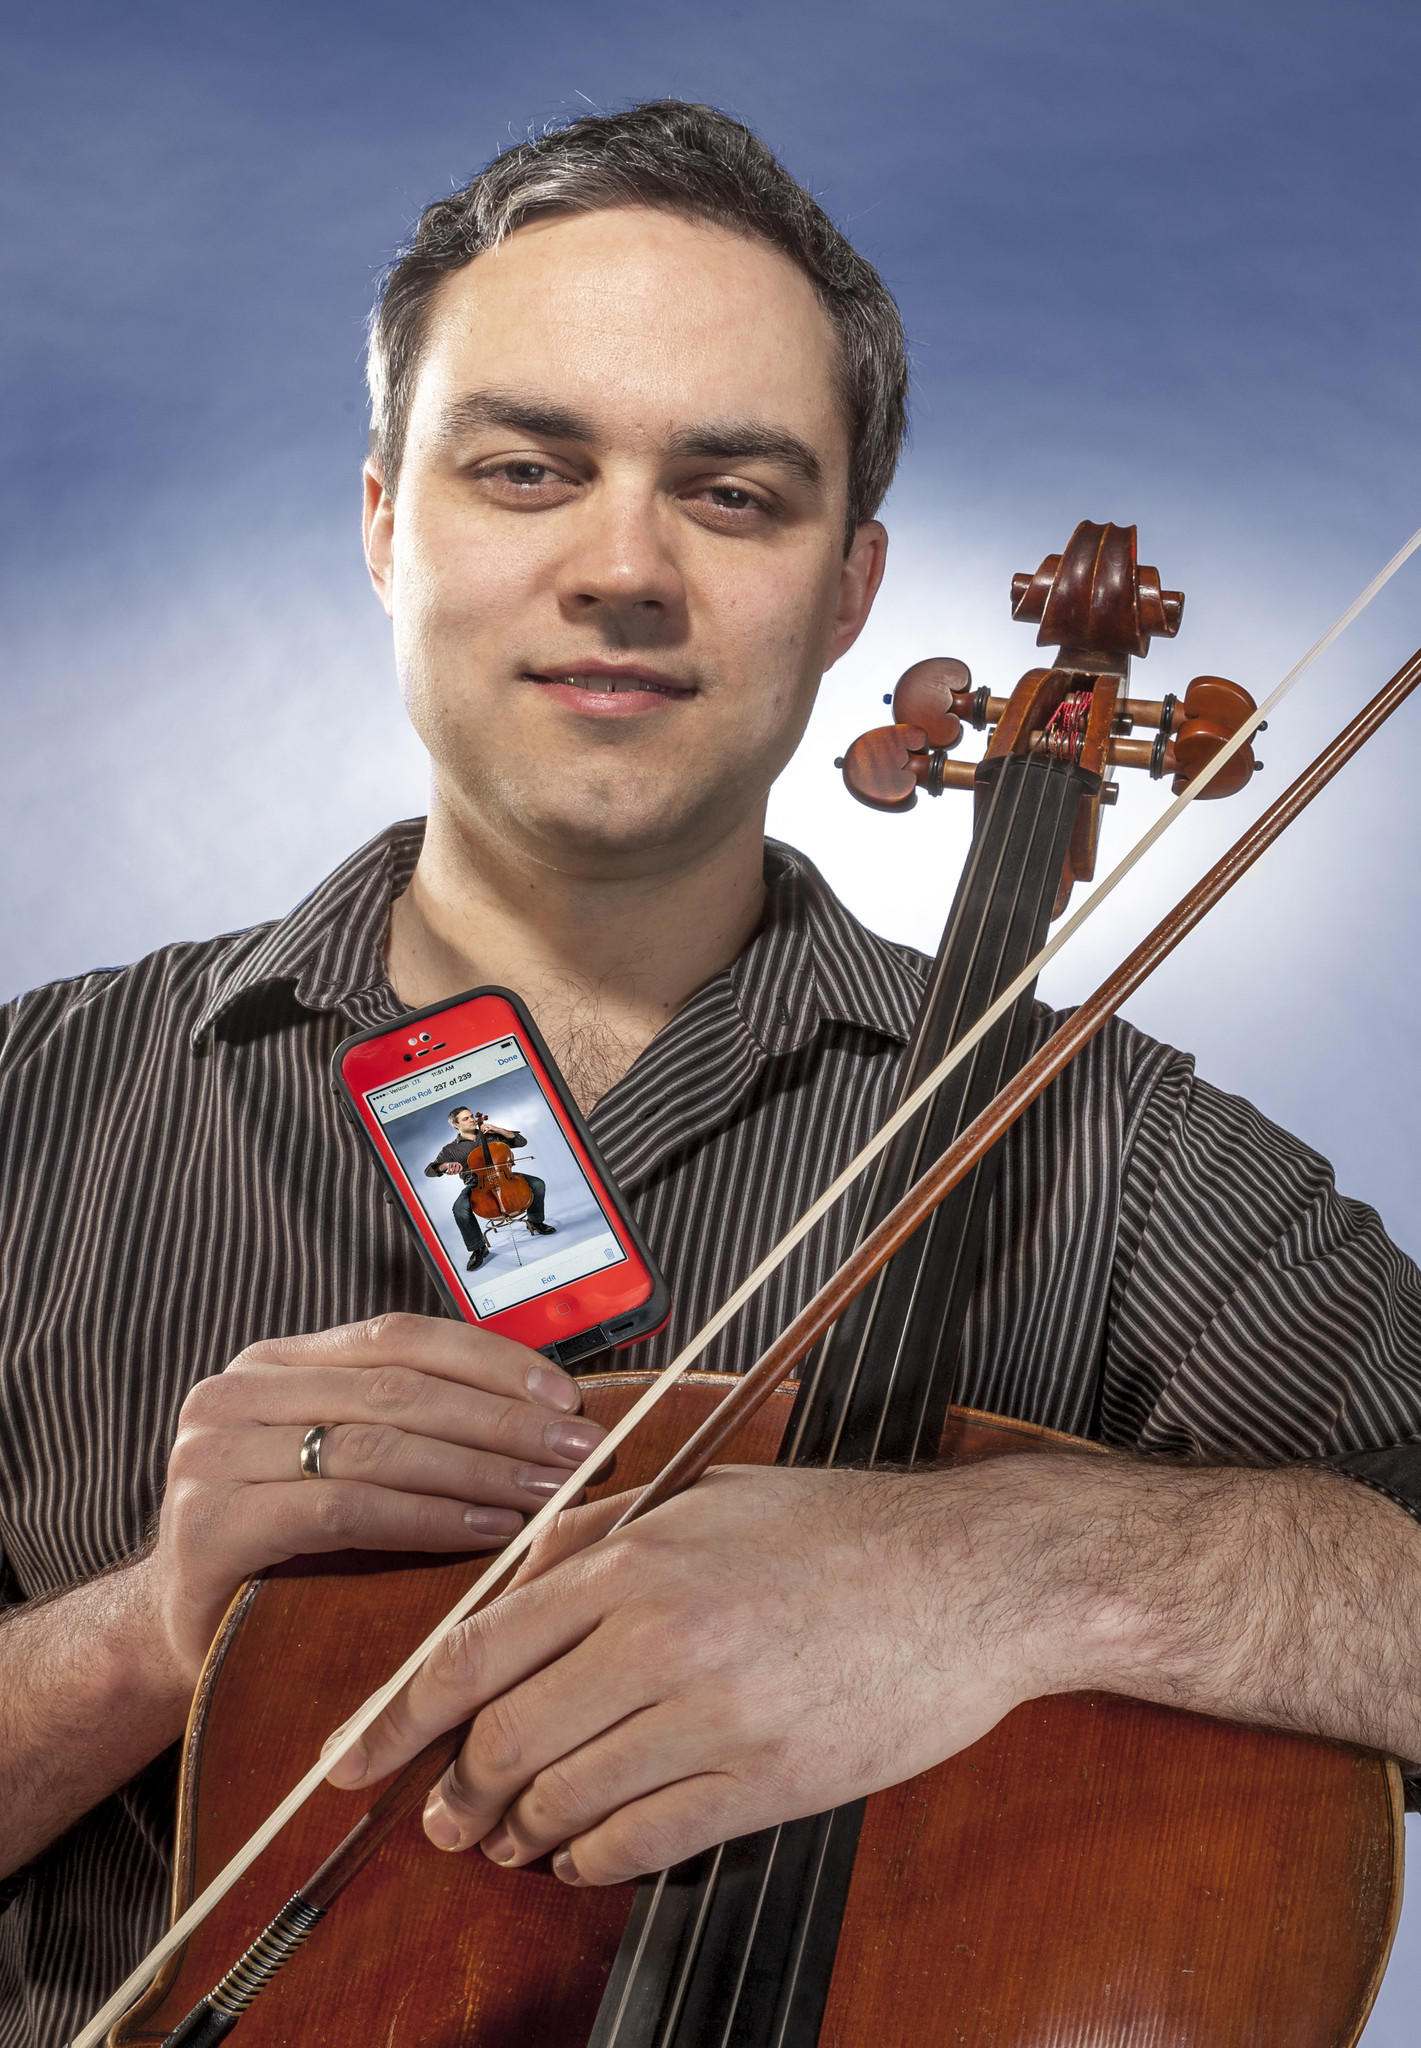 Russell Rolen, cellist for Spektral Quartet, poses with his cello and an iPhone featuring his likeness.